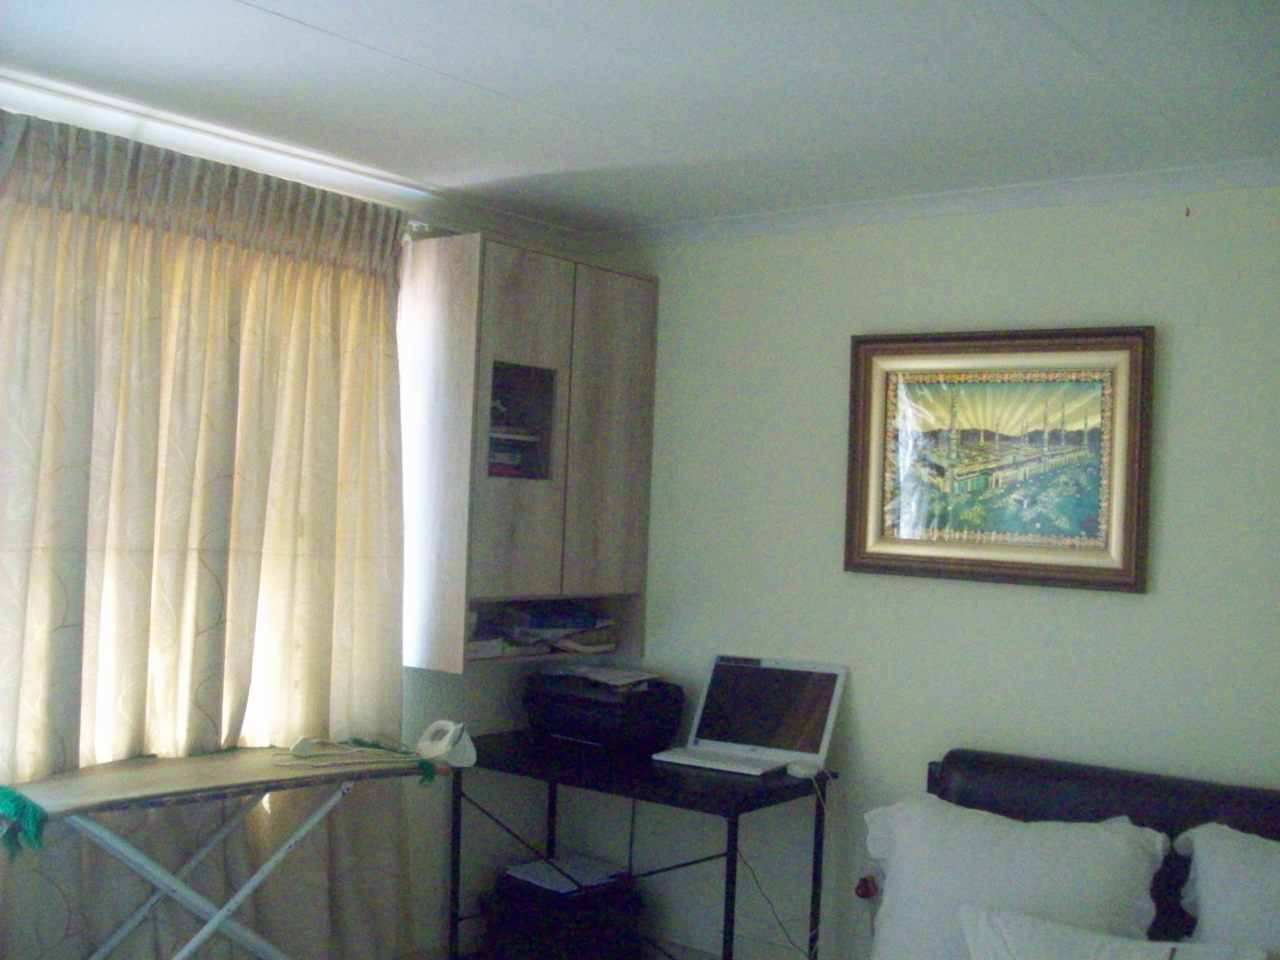 3 Bedroom Townhouse for sale in Bassonia ENT0071278 : photo#41